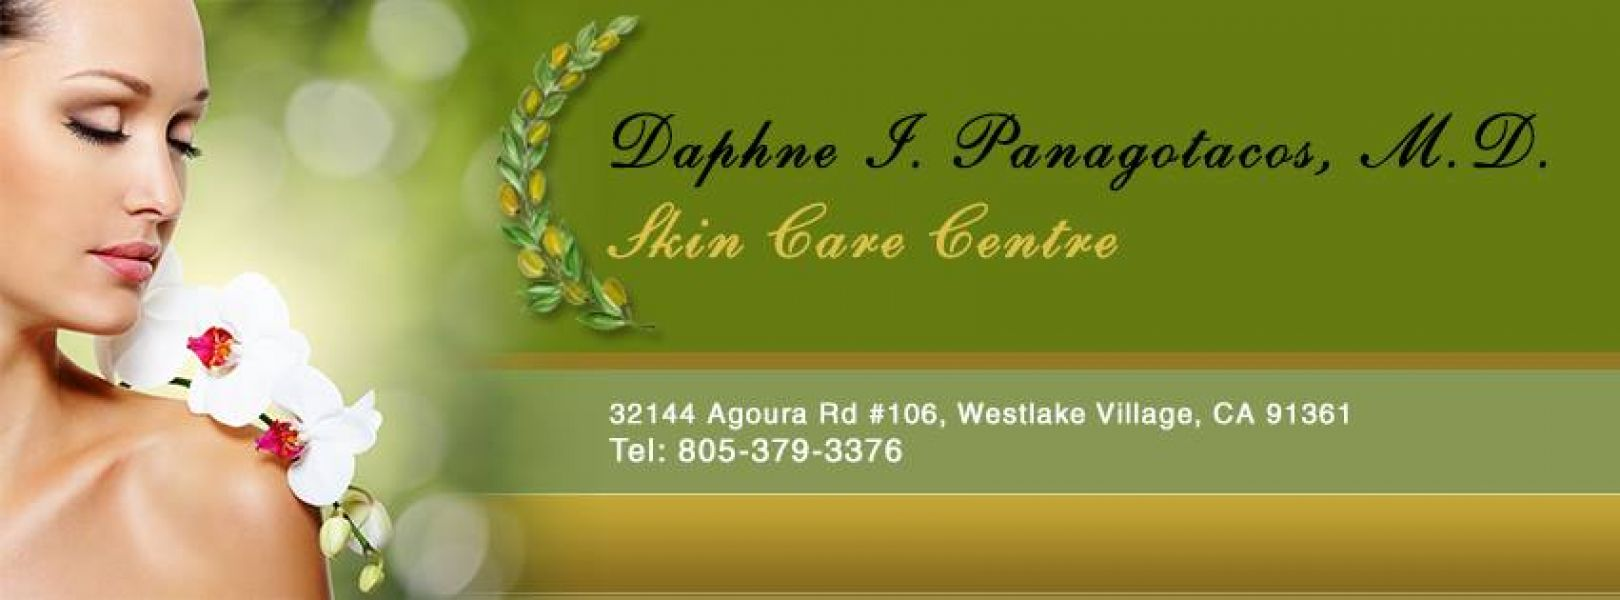 Affordable Dermatologist in Thousand oaks